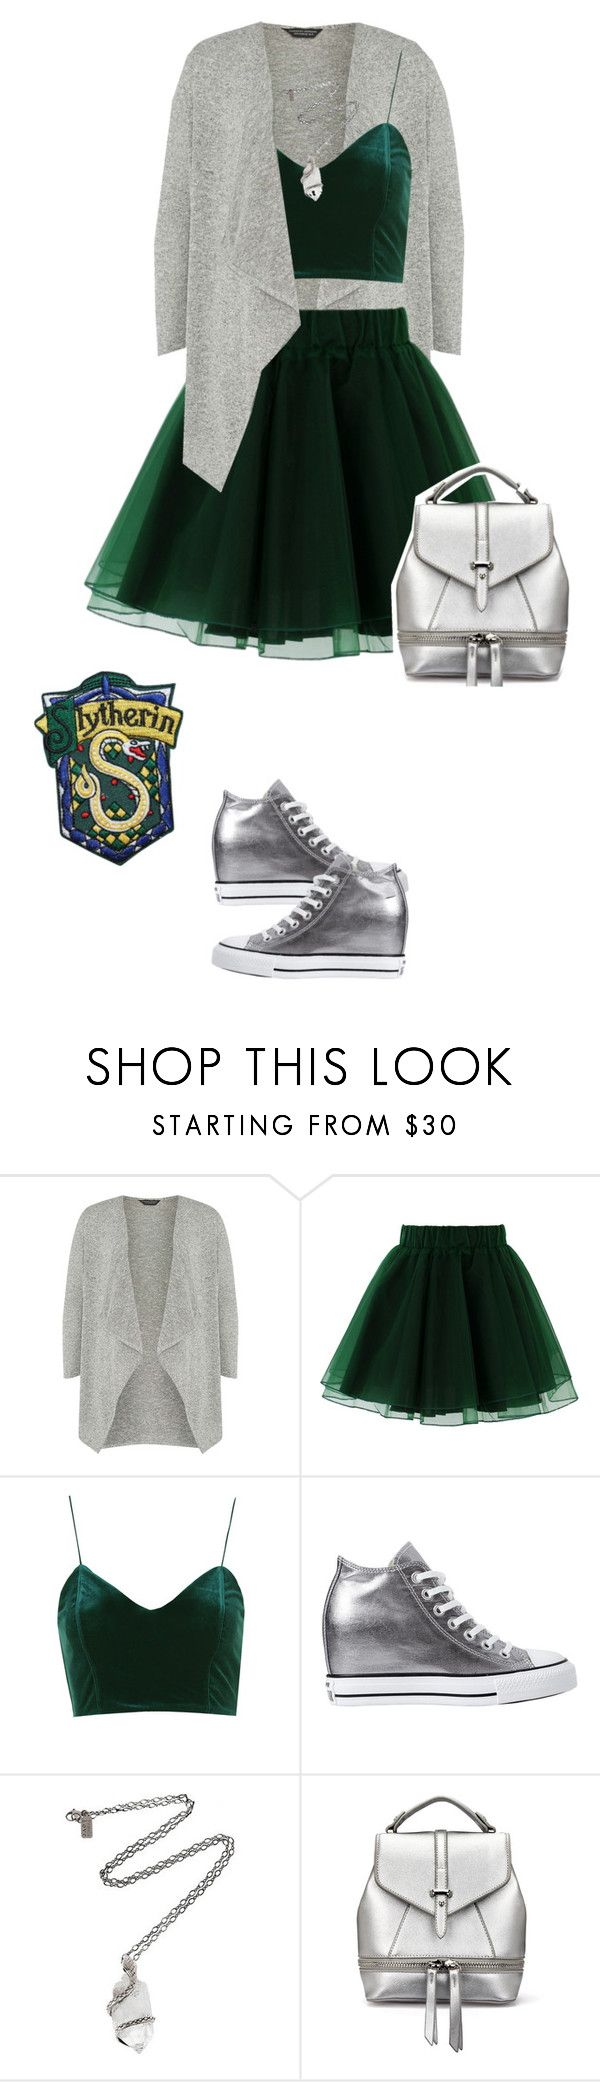 To acquire Love pamela for topshop collection revealed pictures trends